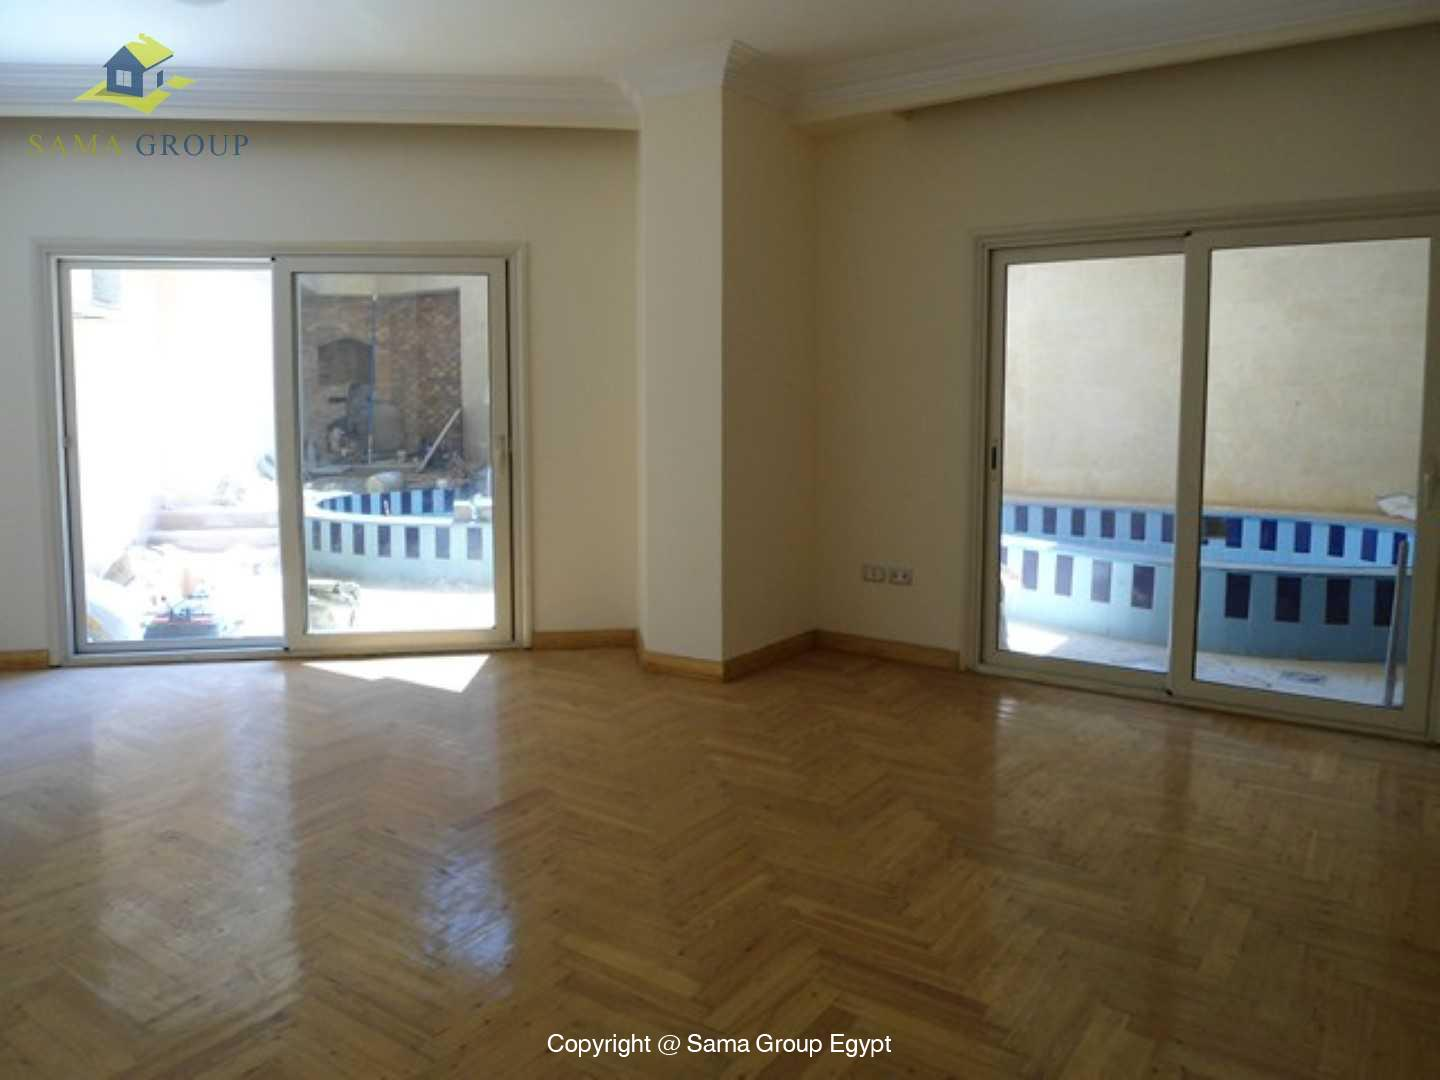 Ground Floor Duplex With Pool For Rent In Maadi Sarayat,Semi furnished,Ground Floor NO #1